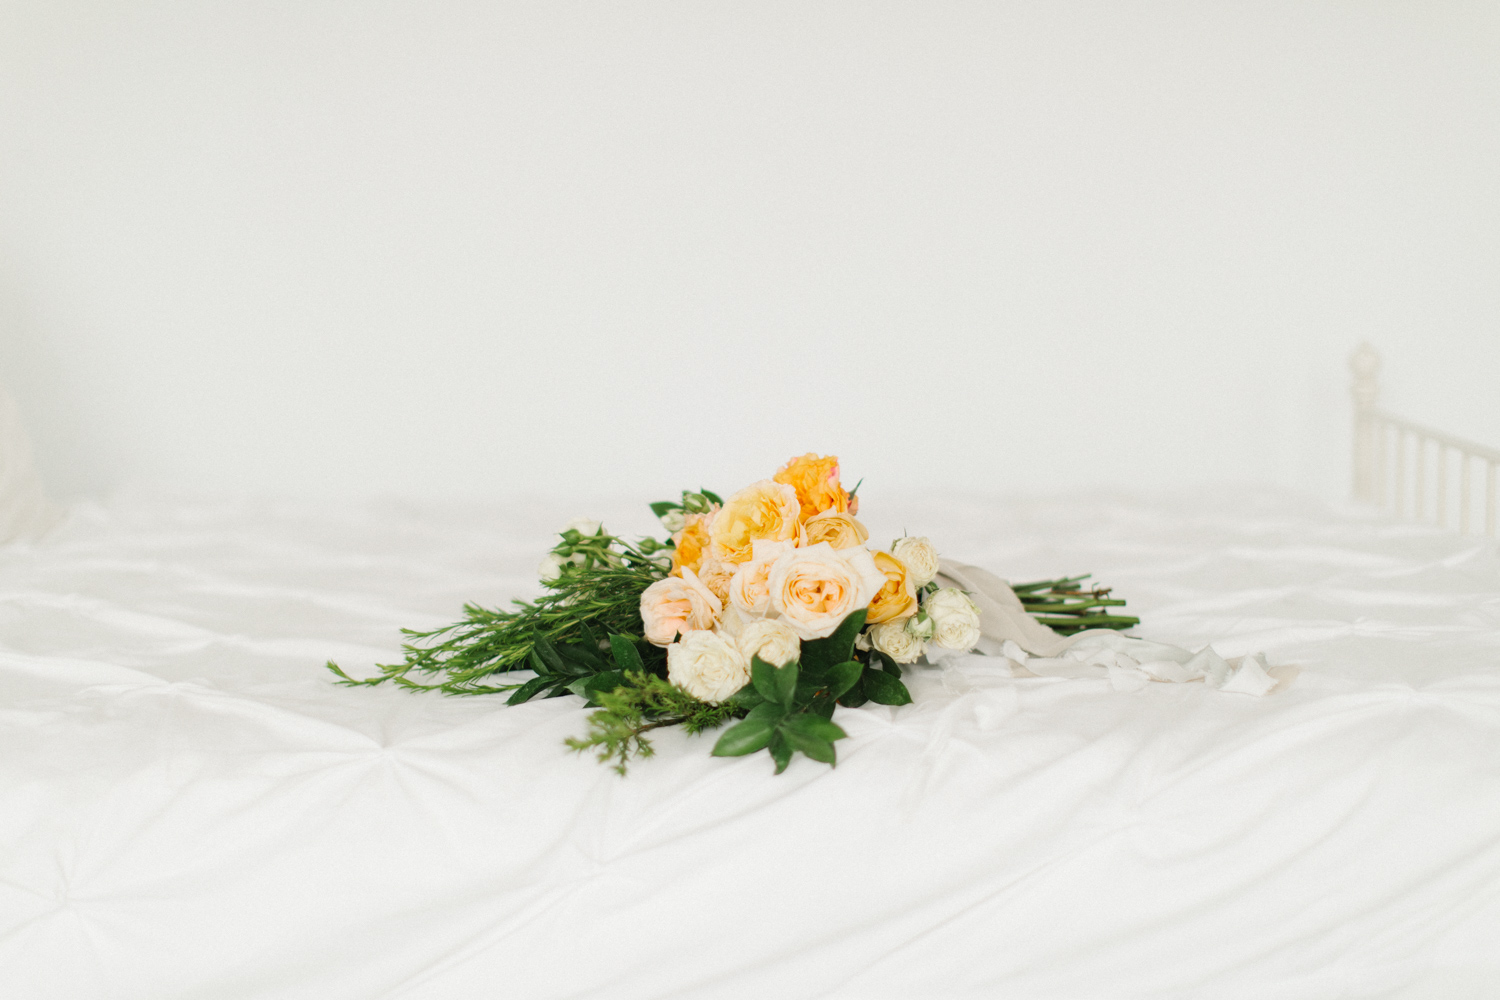 Seattle Fine Art Wedding Photographer | Seattle Downtown White Studio Bridal Session | Stunning Wedding Bouquet | Seattle Bride | Seattle Wedding | Photography Studio Space | Emma Rose Company Wedding Photography-11.jpg